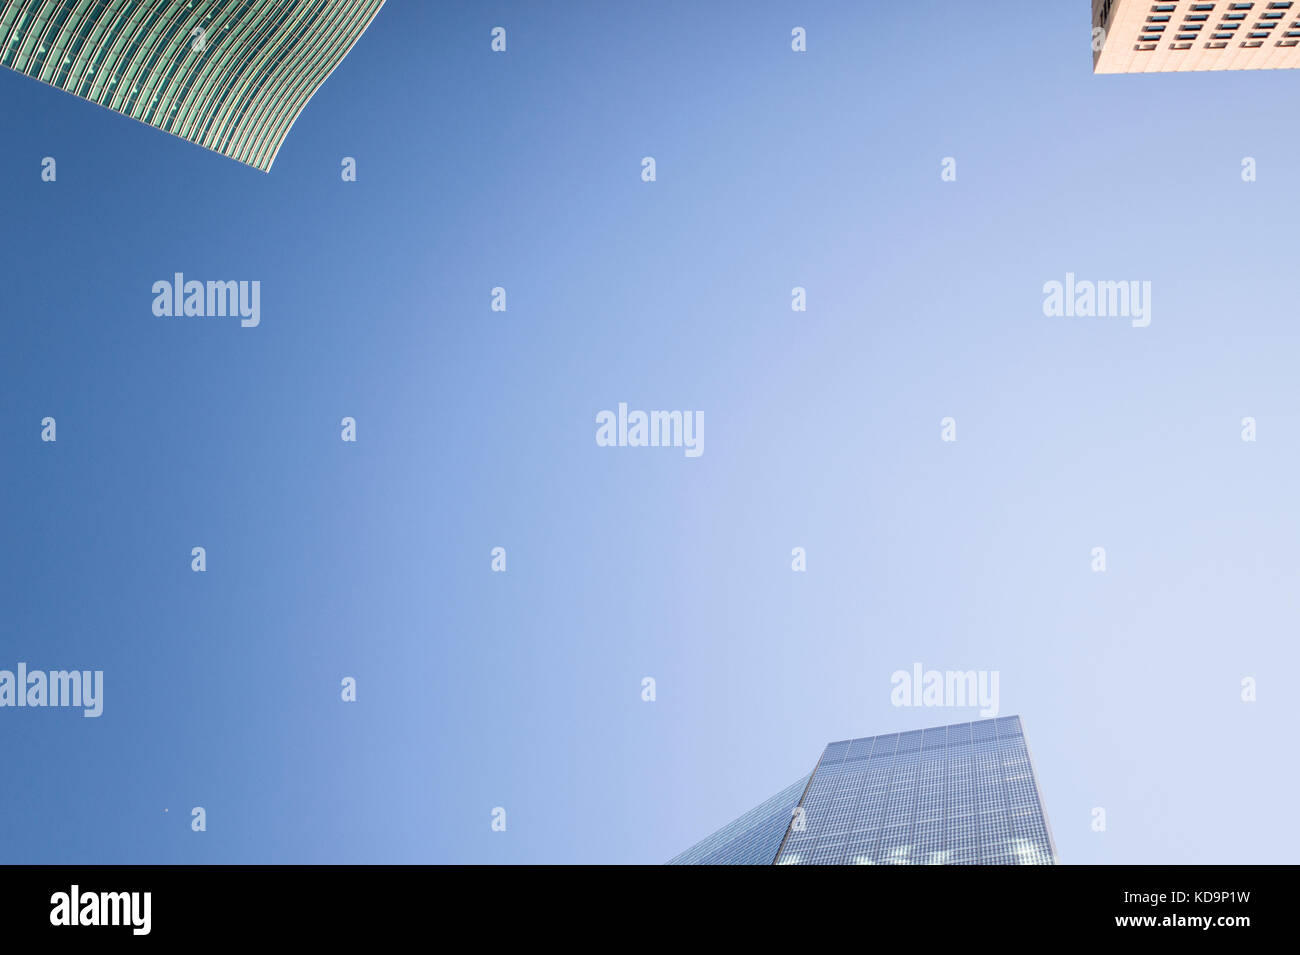 Buildings in Tokyo from bottom to top in Ginza district. Japan. - Stock Image